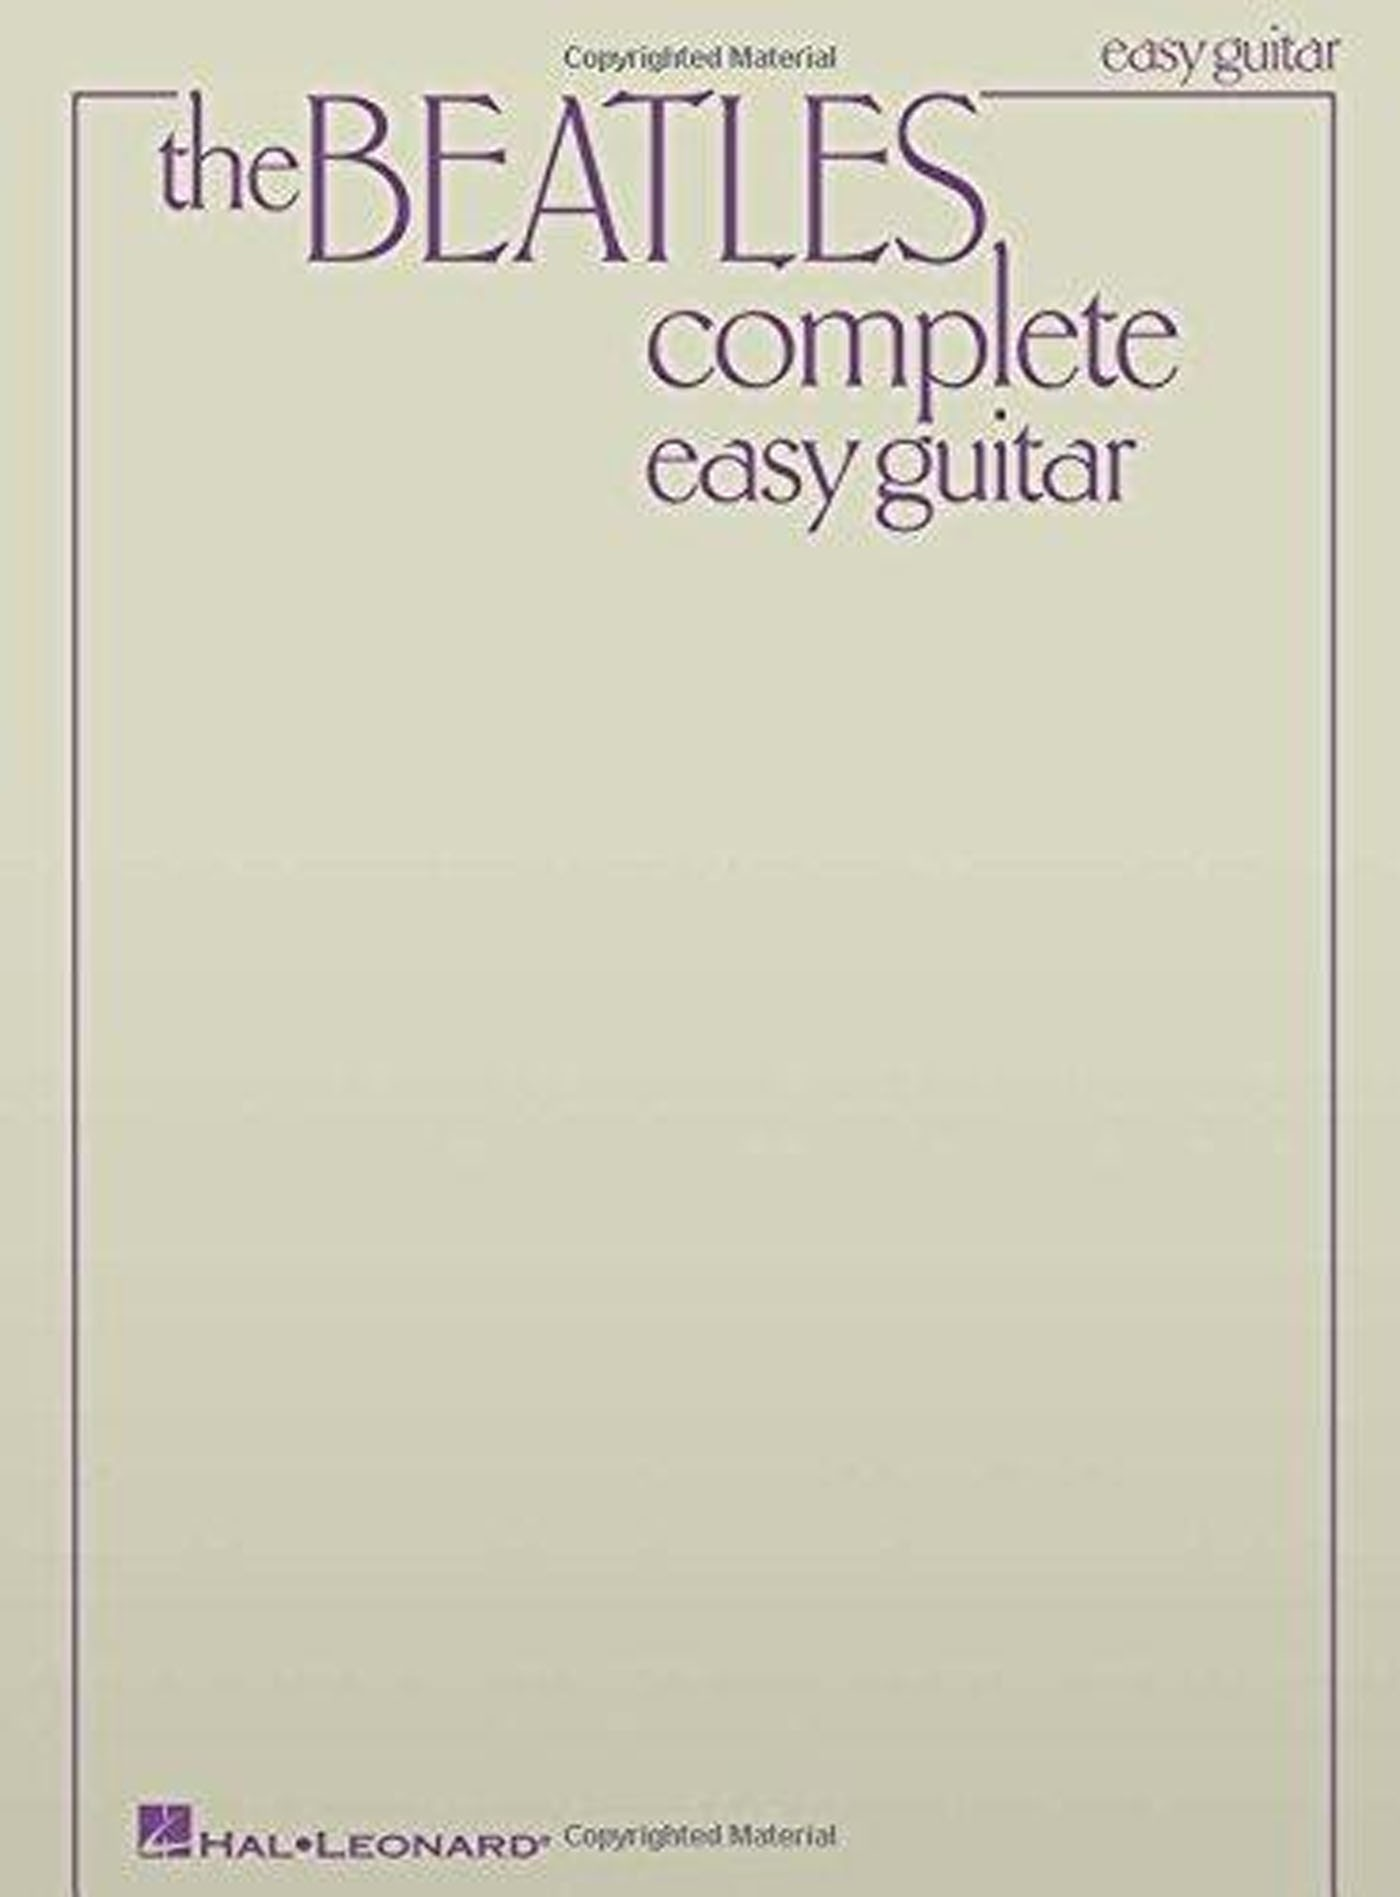 The Beatles Complete Easy Guitar Songbook Updated Edition 155 Songs S147